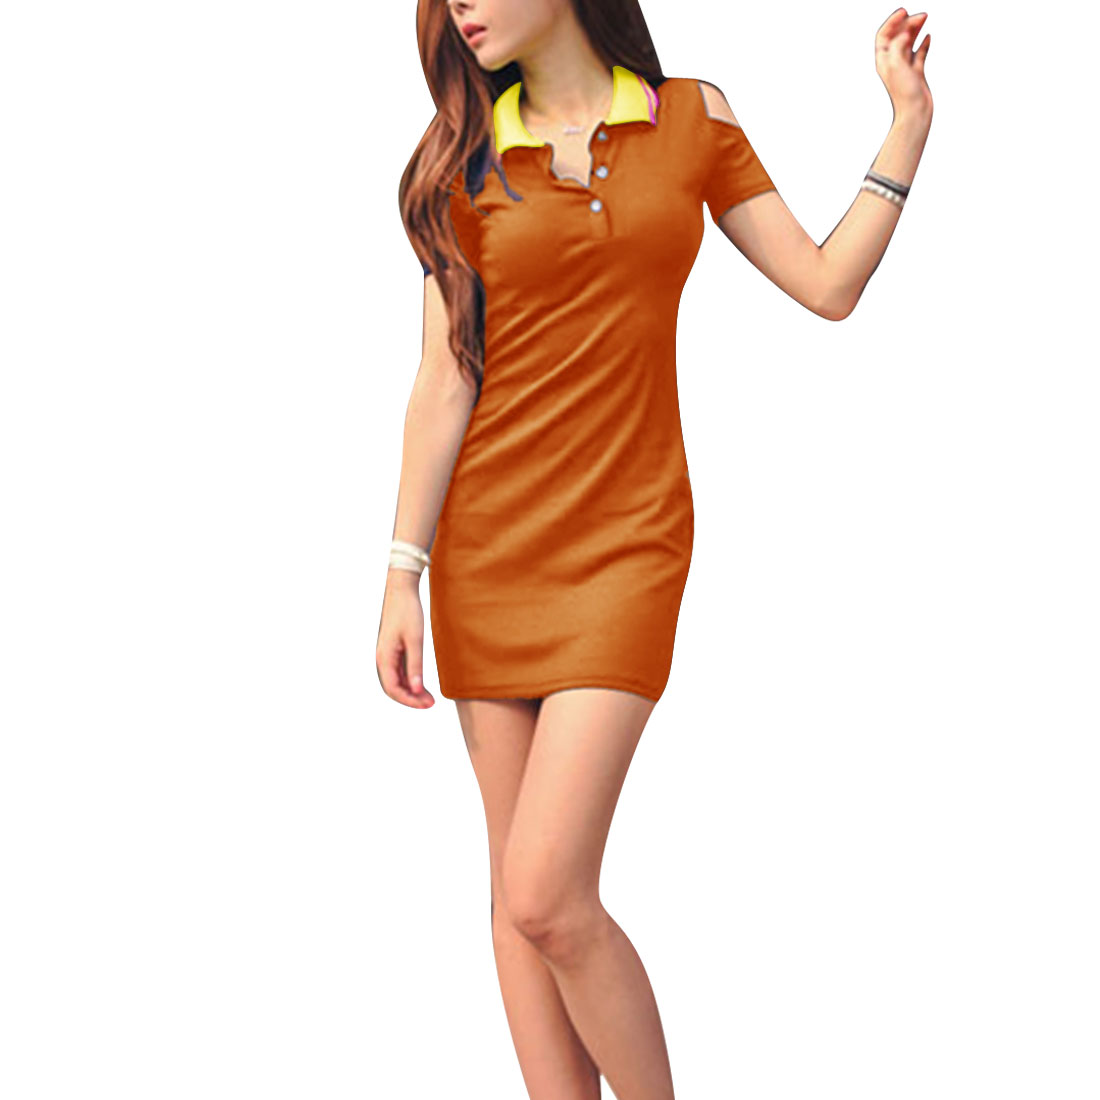 Women Convertible Collar Short Sleeve Cut Out Dress Orange XS